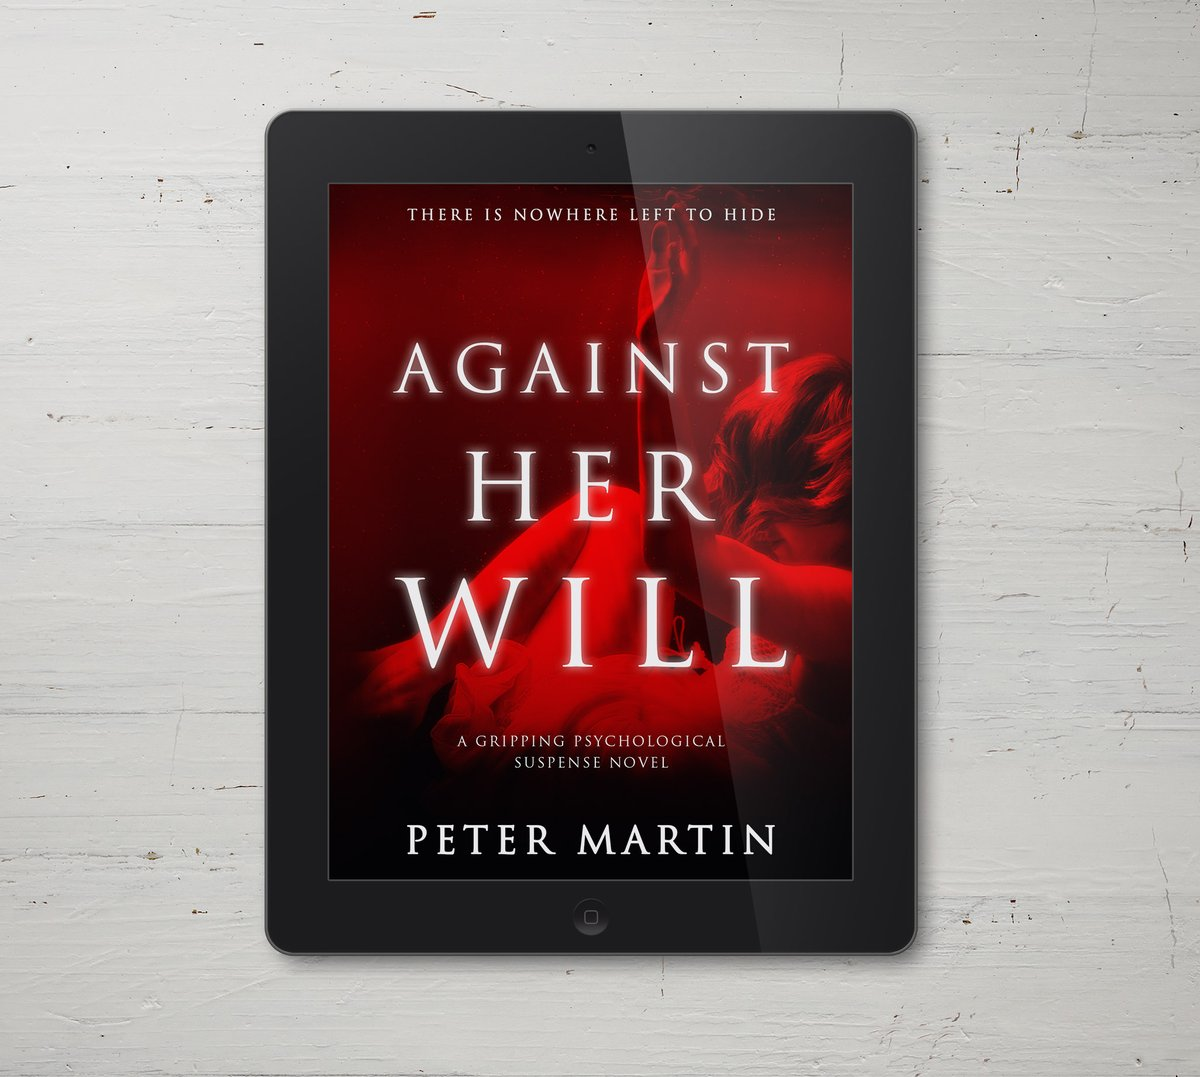 #SUSPENSE AGAINST HER WILL P MARTIN When men smile at her she knows what it means https://t.co/uGui4YTK2g #FREEKUNLIMITED https://t.co/I1sBAcxGON